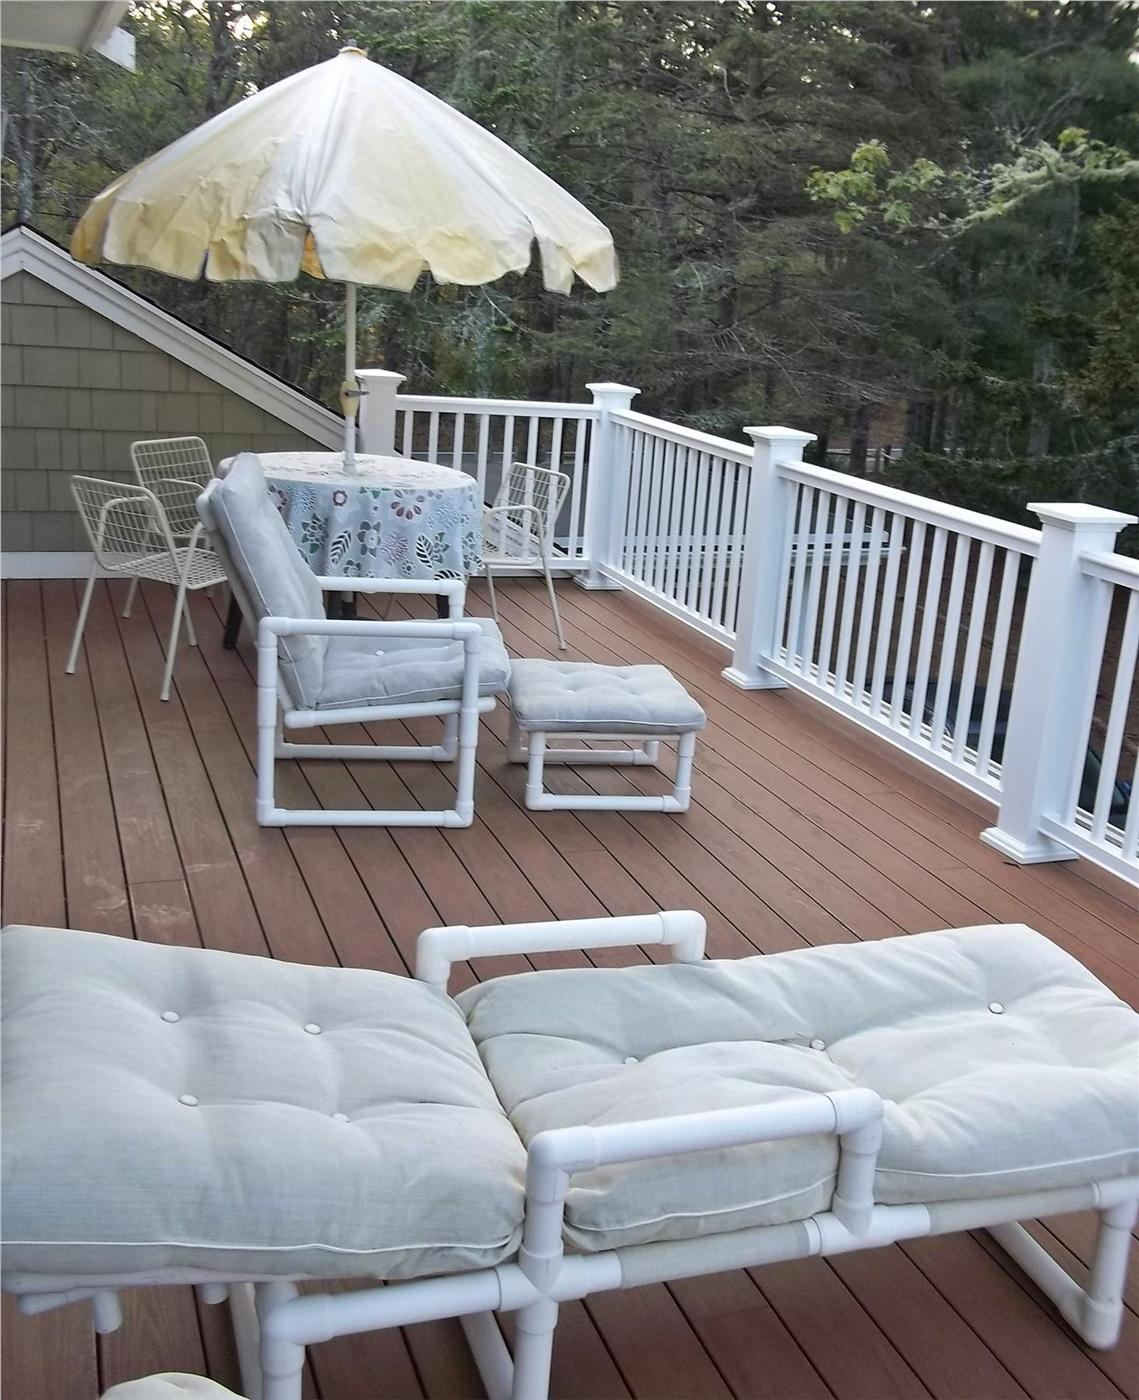 Harwich Vacation Rental Home In Cape Cod MA 02671, 2/10